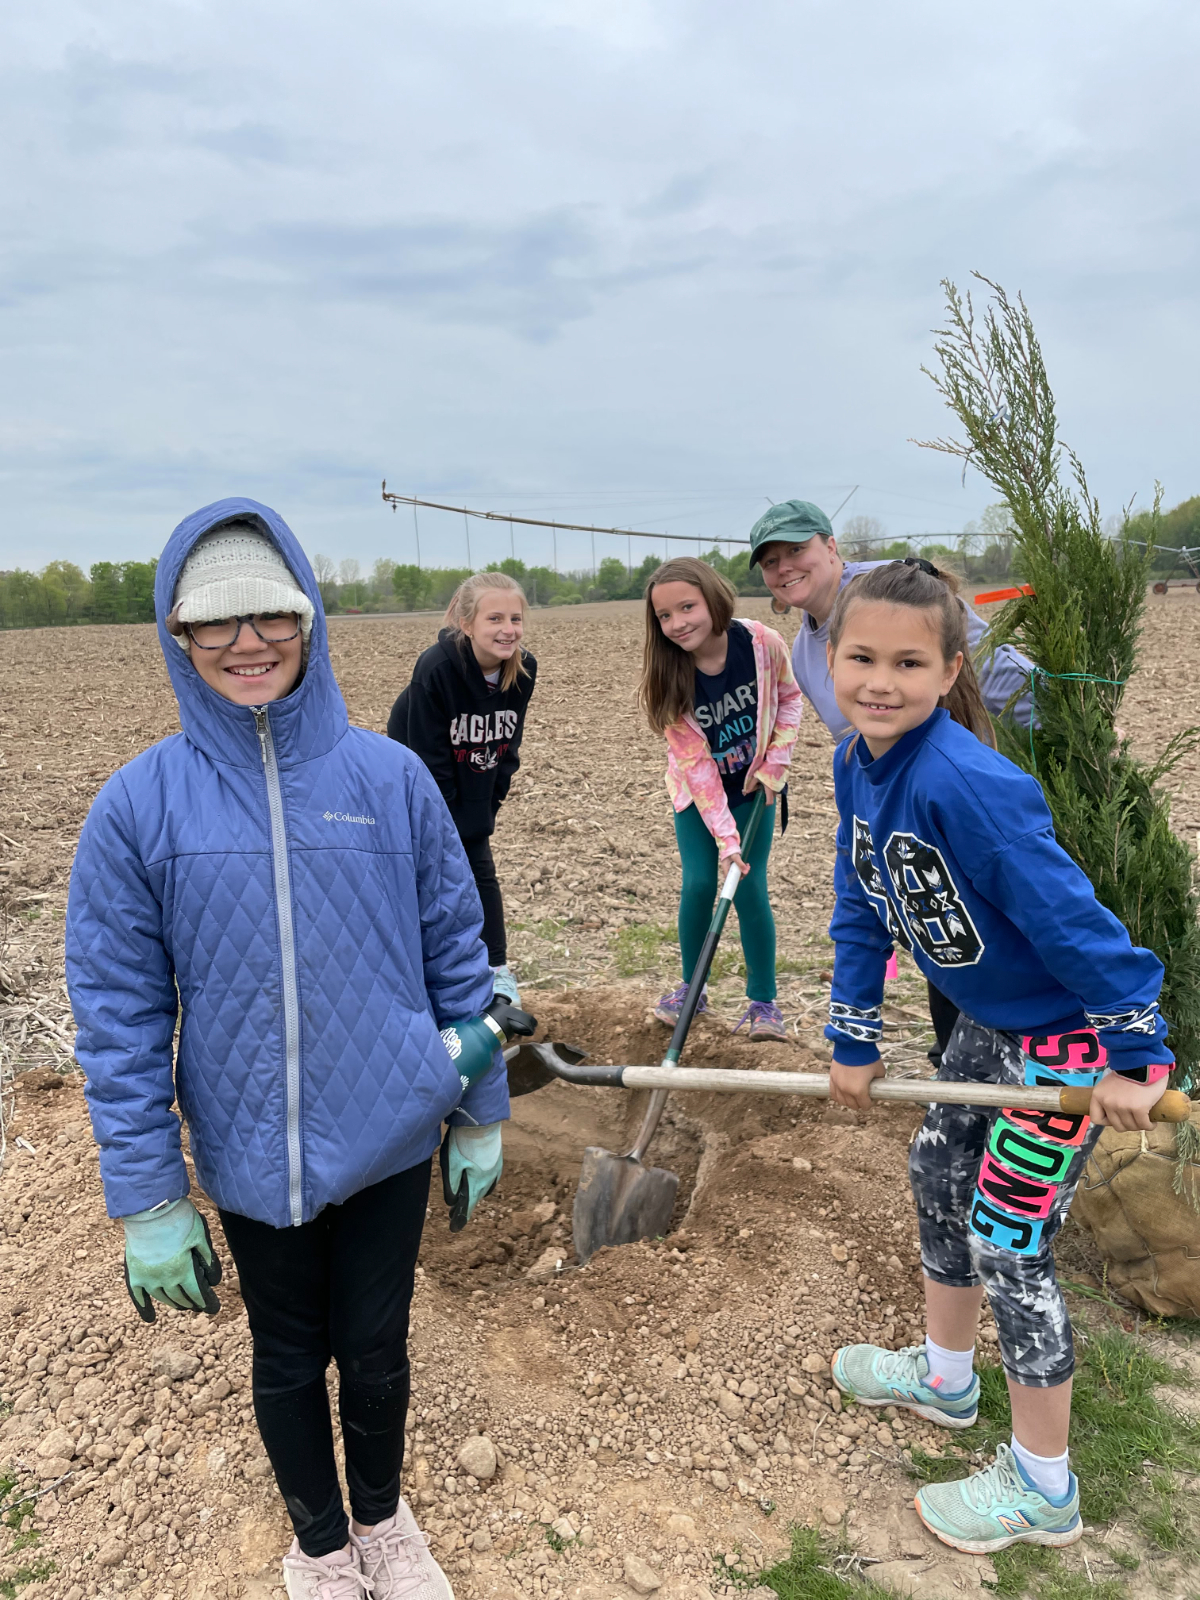 Kent City Cross Country Course Tree Planting — Saturday, May 15, 2021